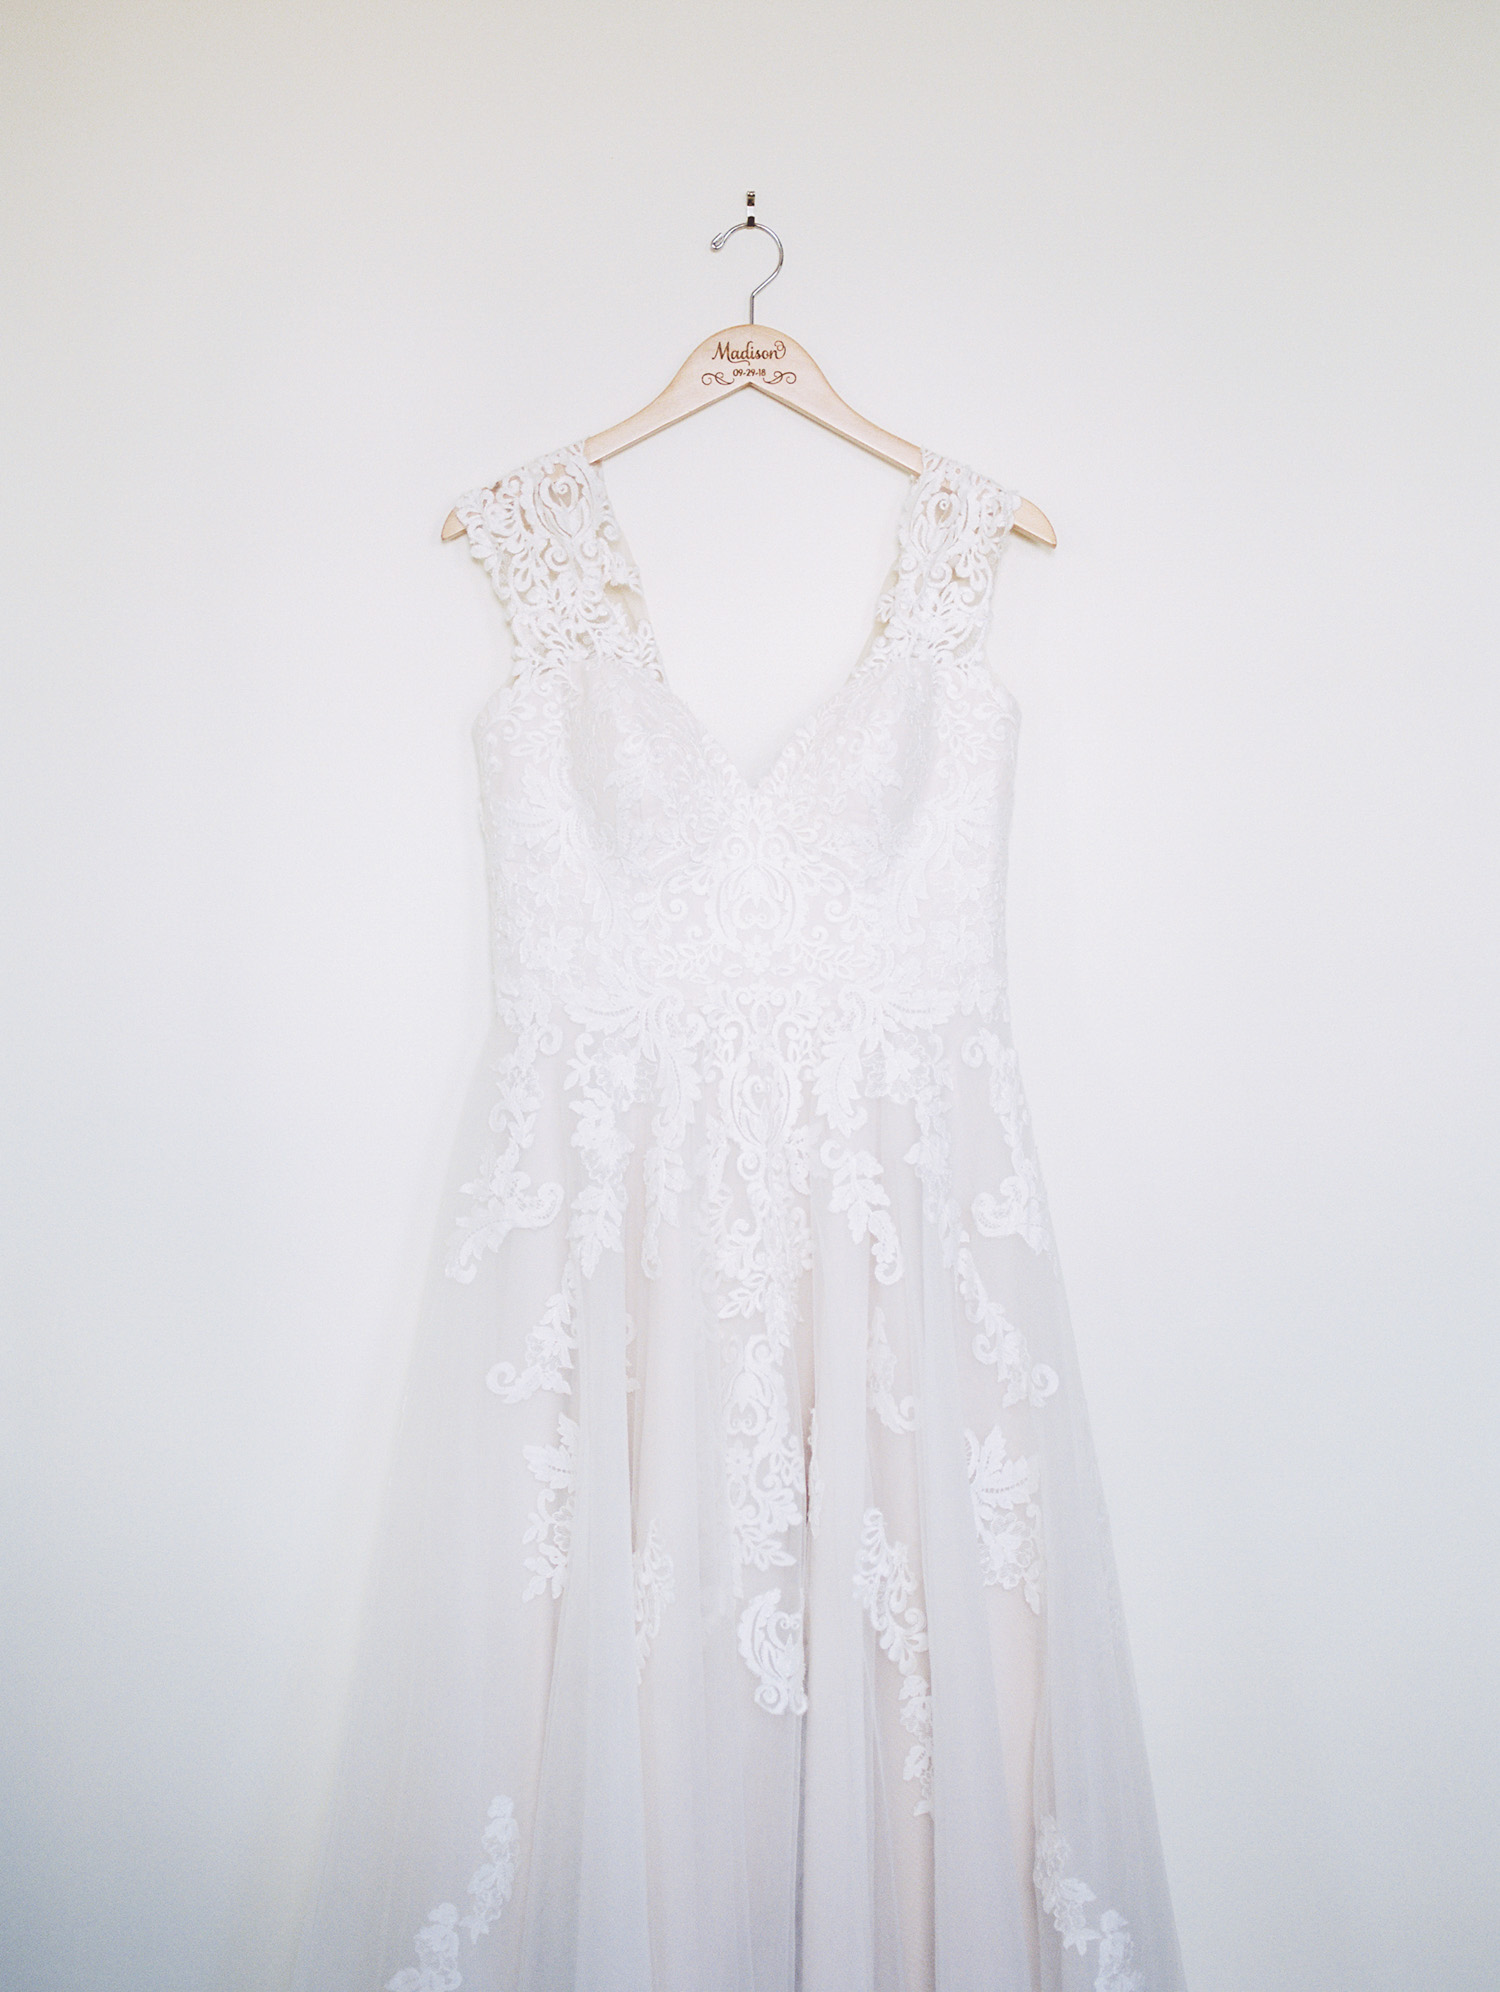 A beautiful lace wedding gown hangs on a white wall